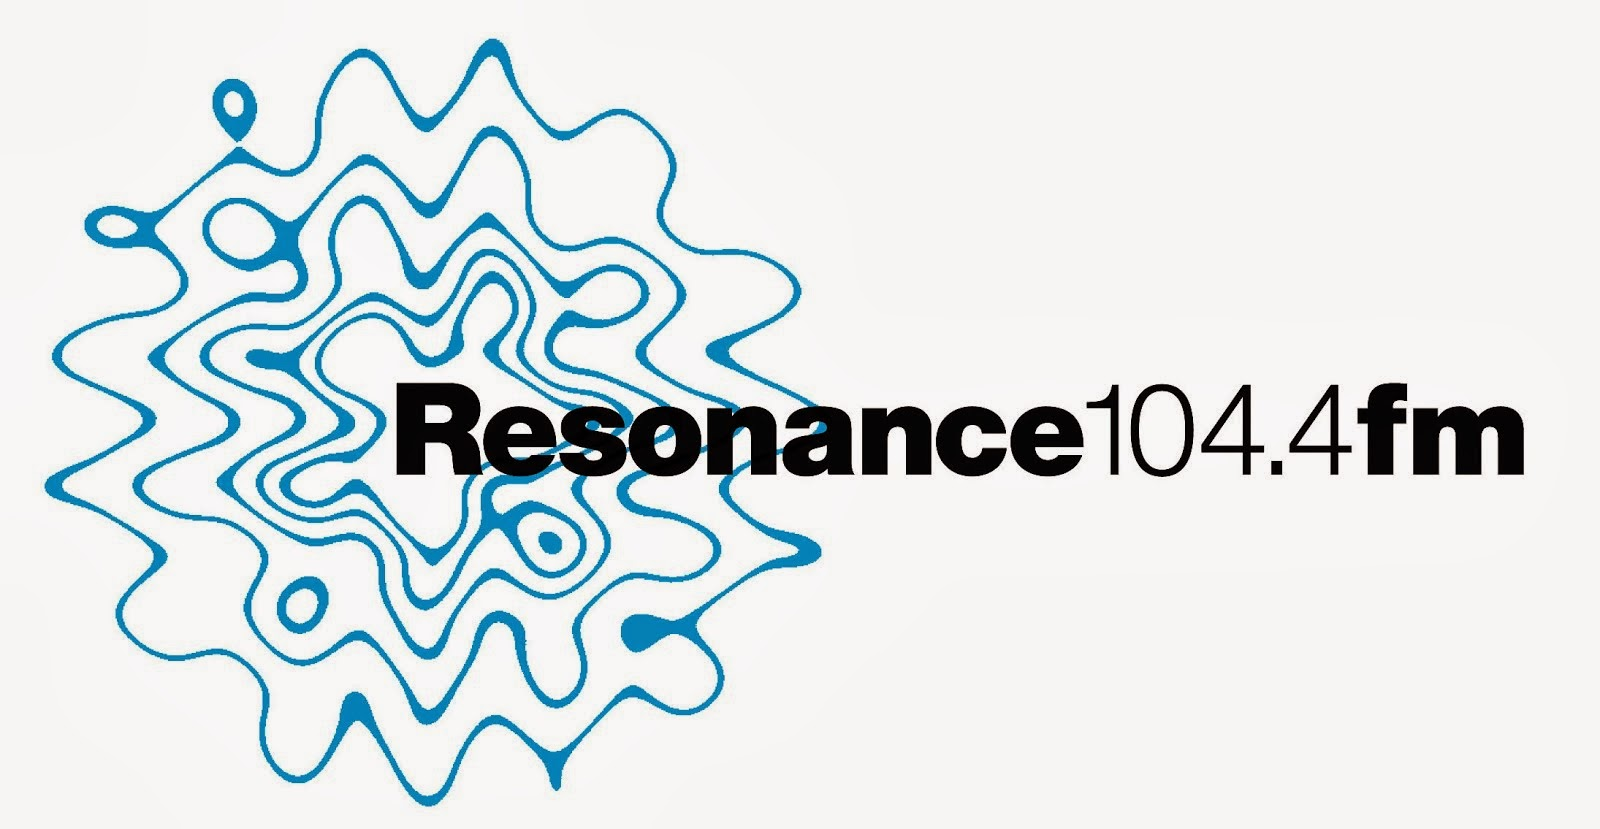 Resonance 104.4fm